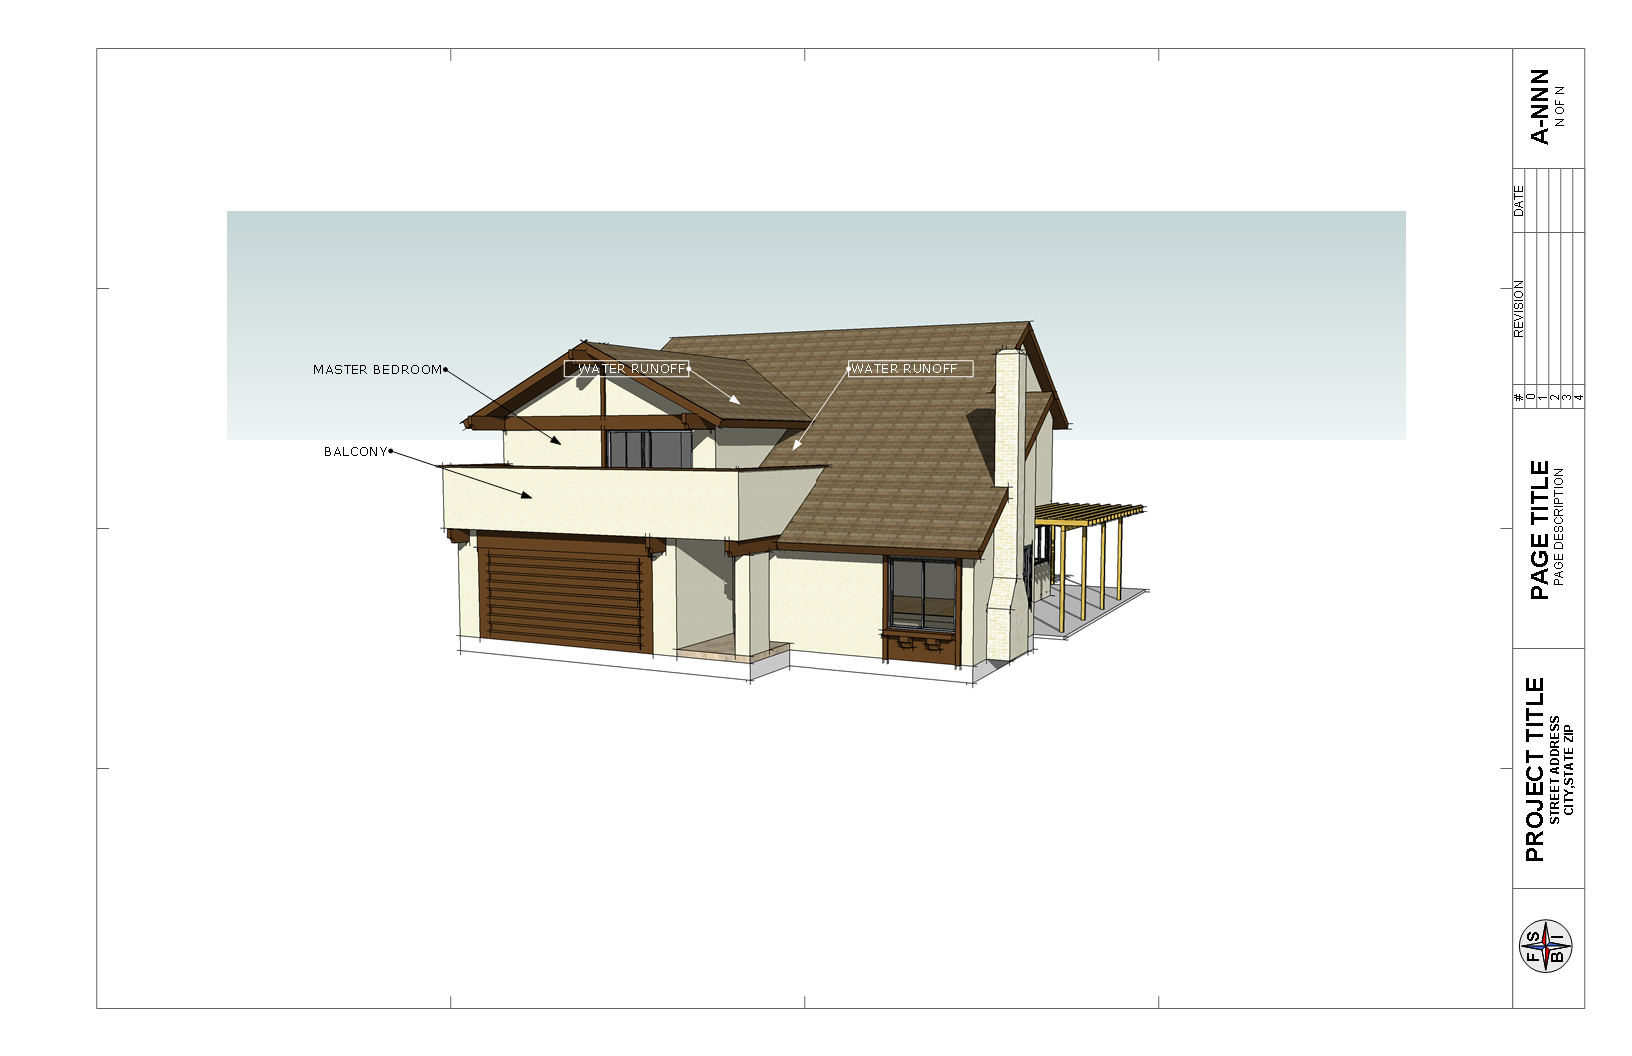 Architectural Design The Addition And Fixing The Roof